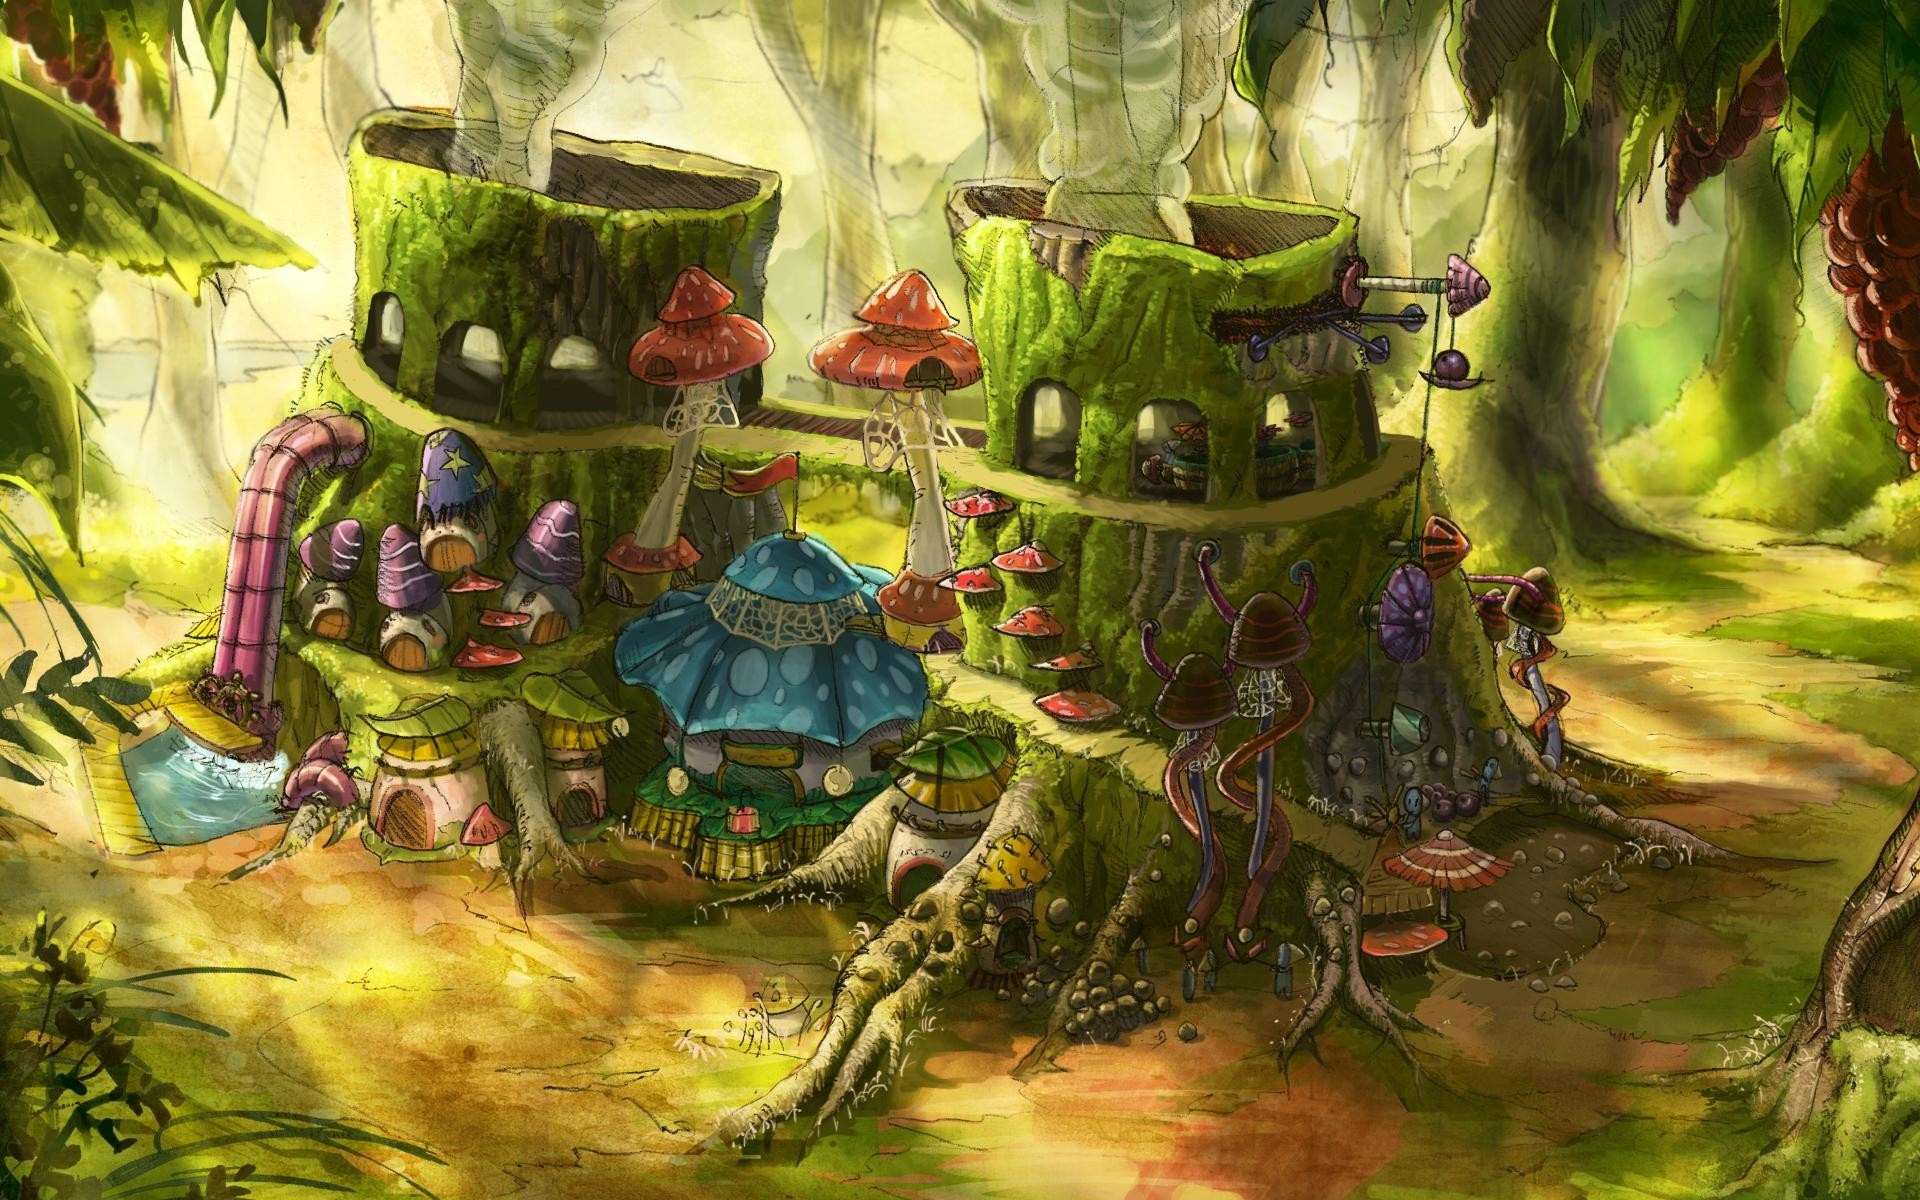 3d Mushroom Garden Wallpaper Download Fantasy Art Digital Art House Mushroom Tree Stump